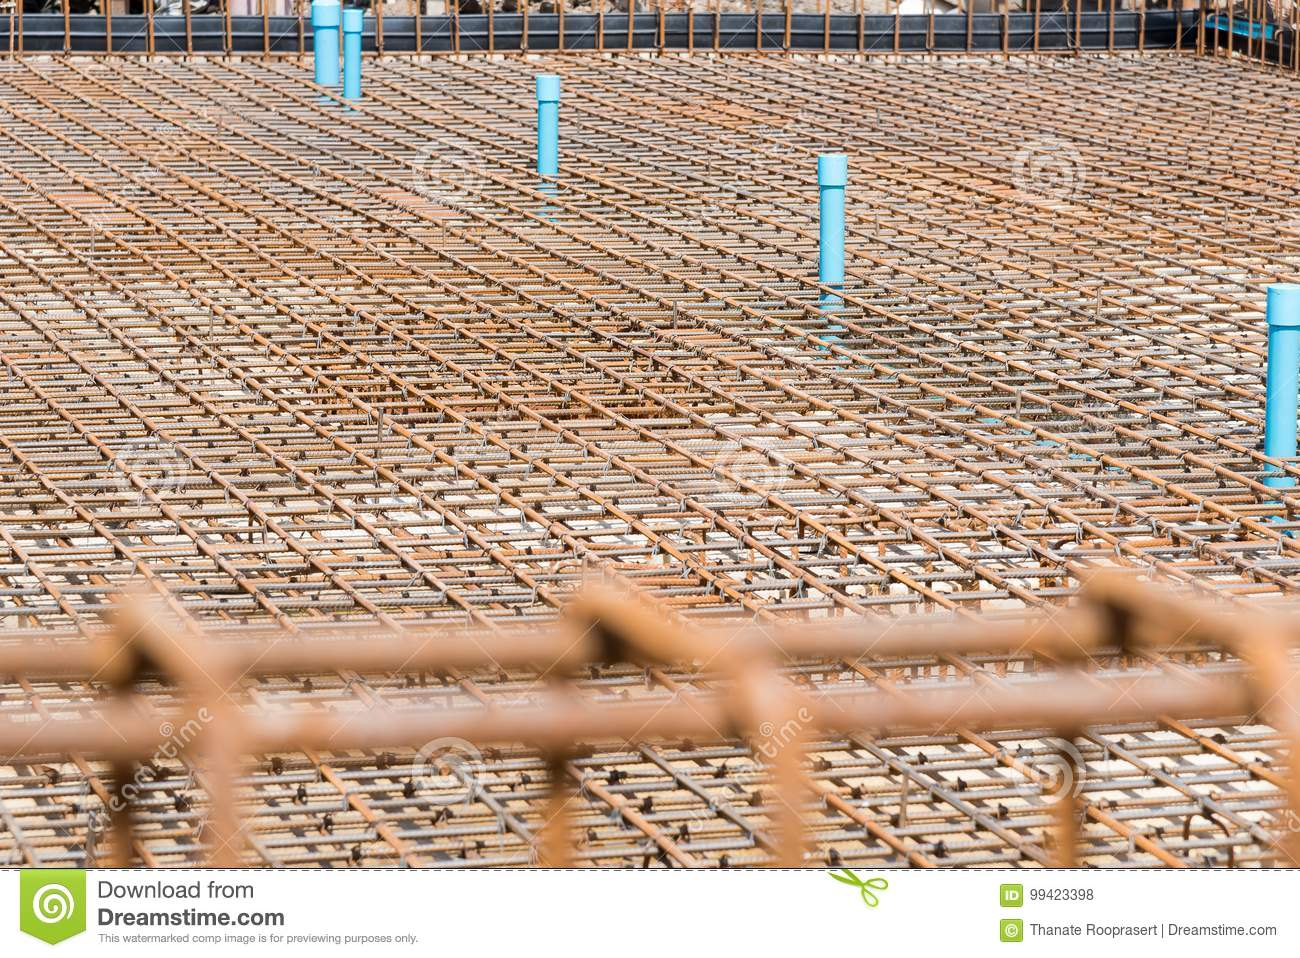 Reinforcement Metal Framework And Pipe System For Drainage